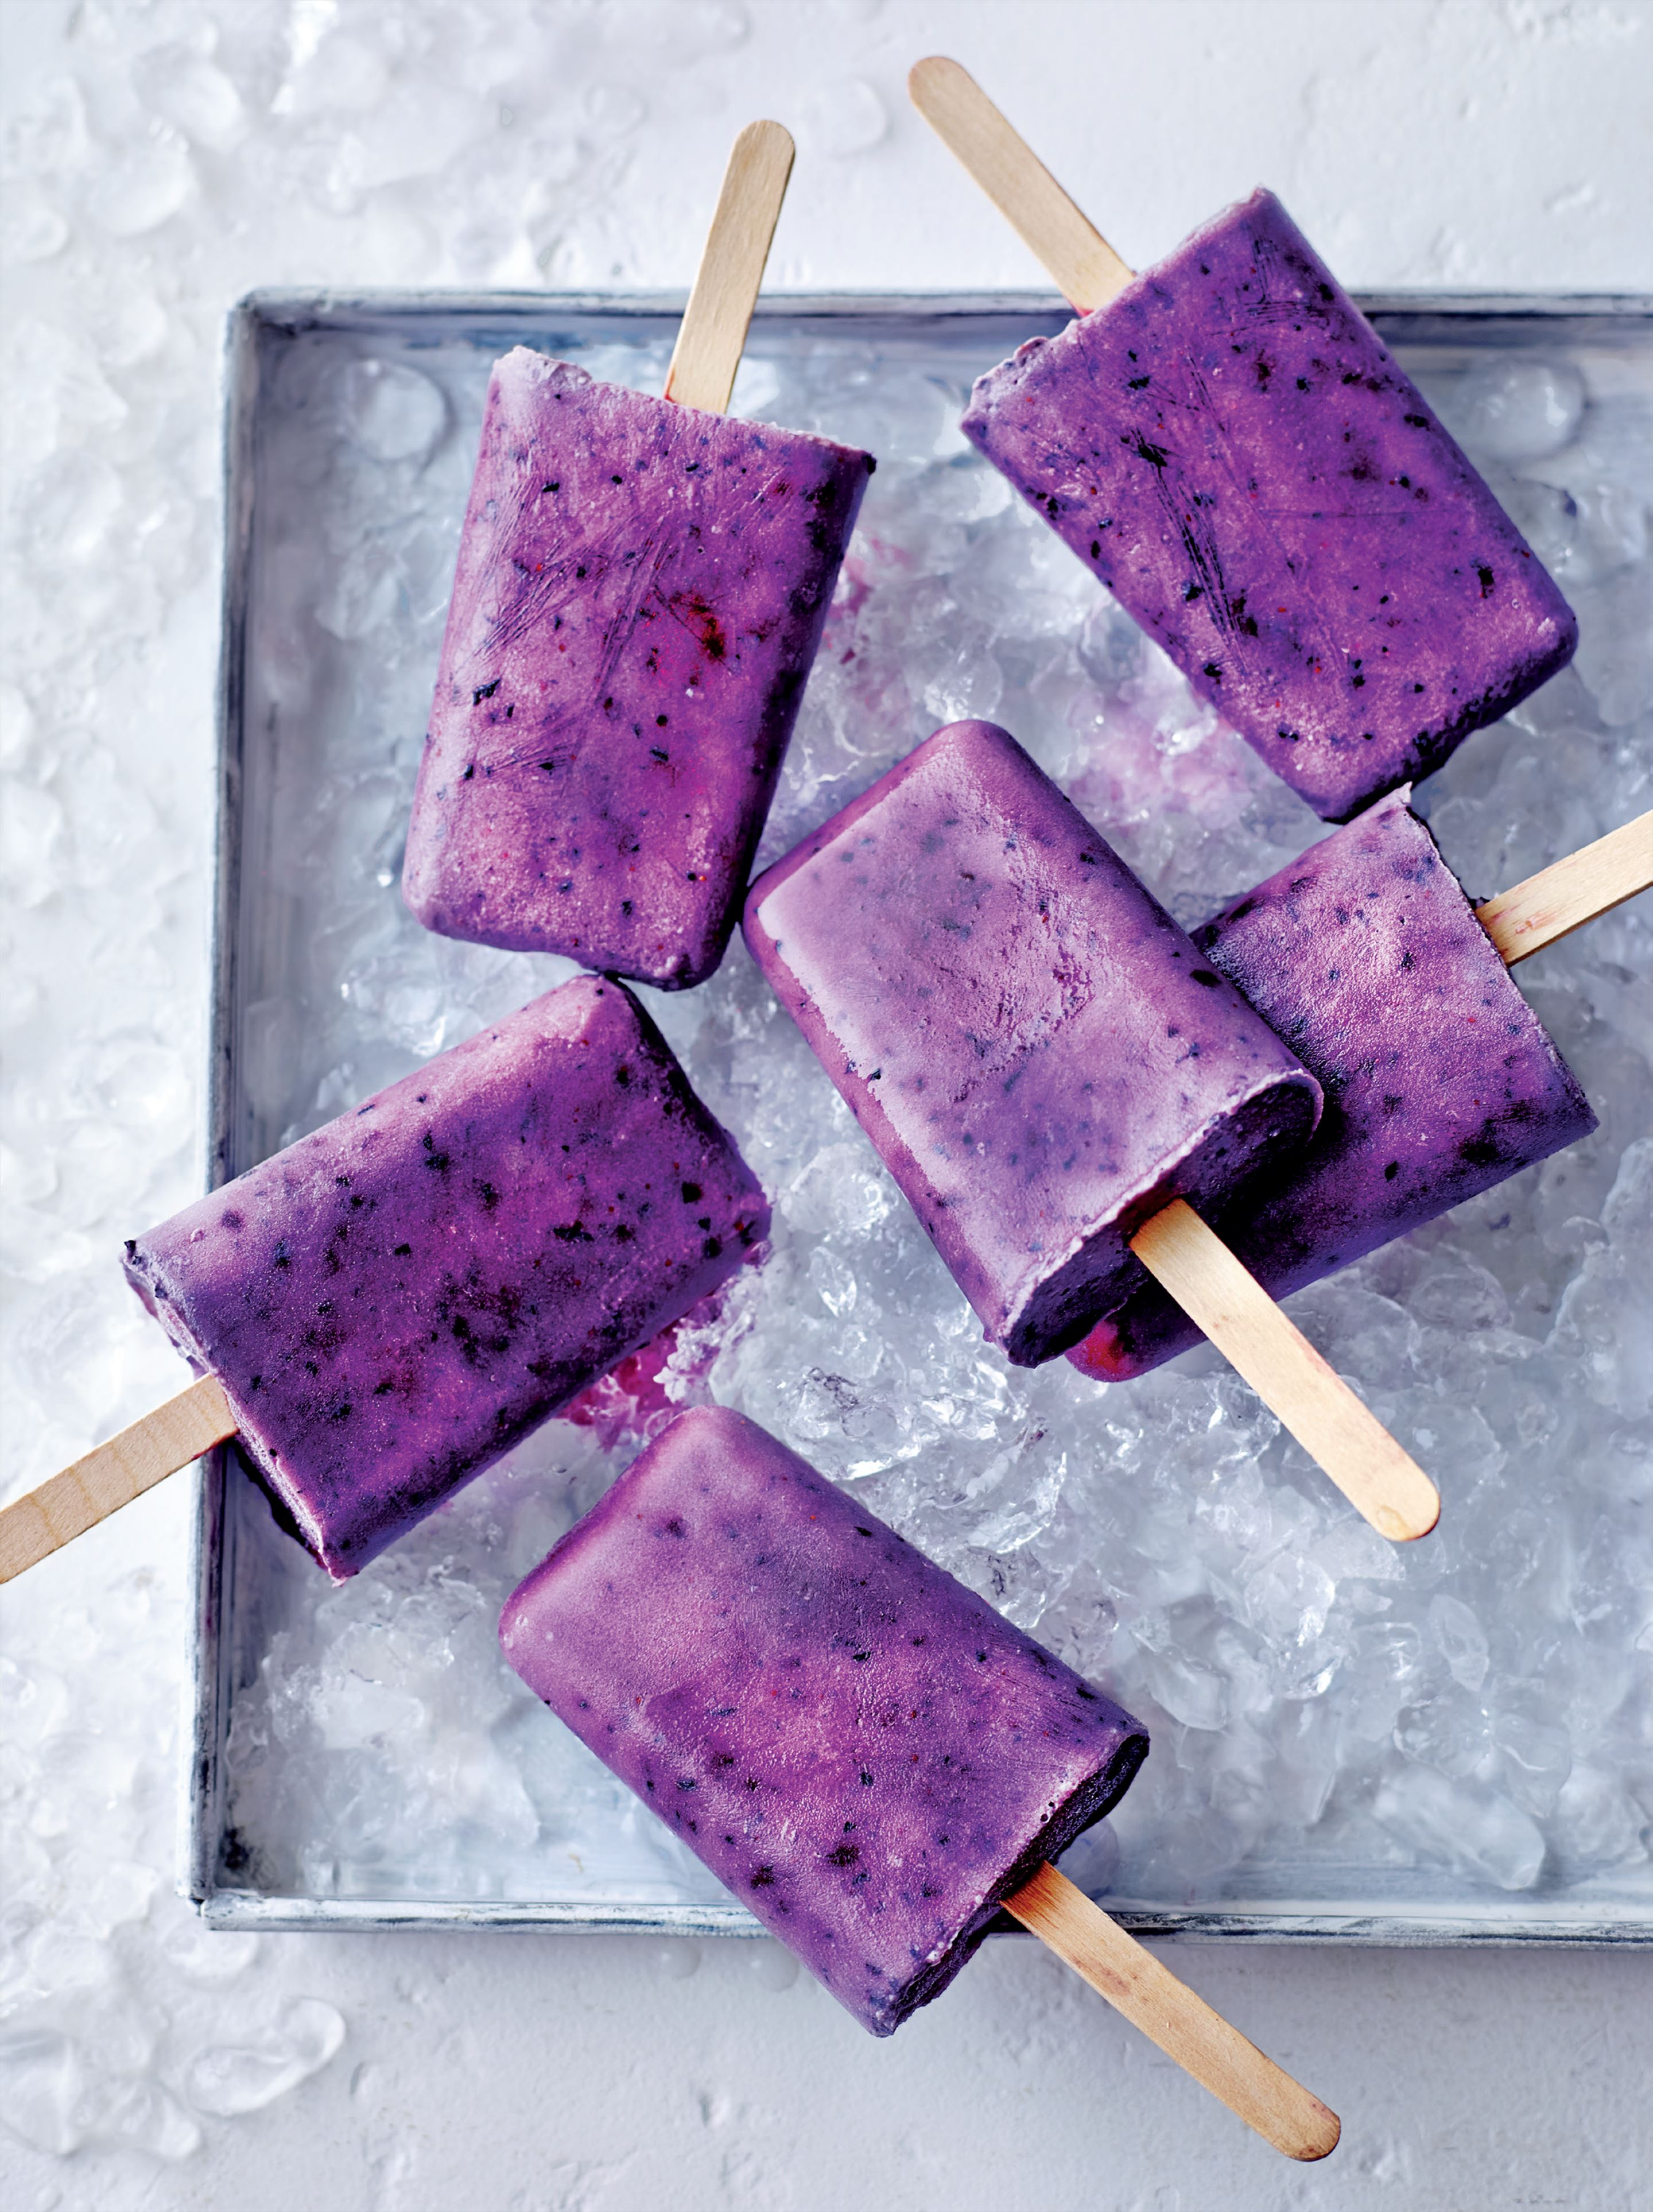 Berry-coconut ice lollies